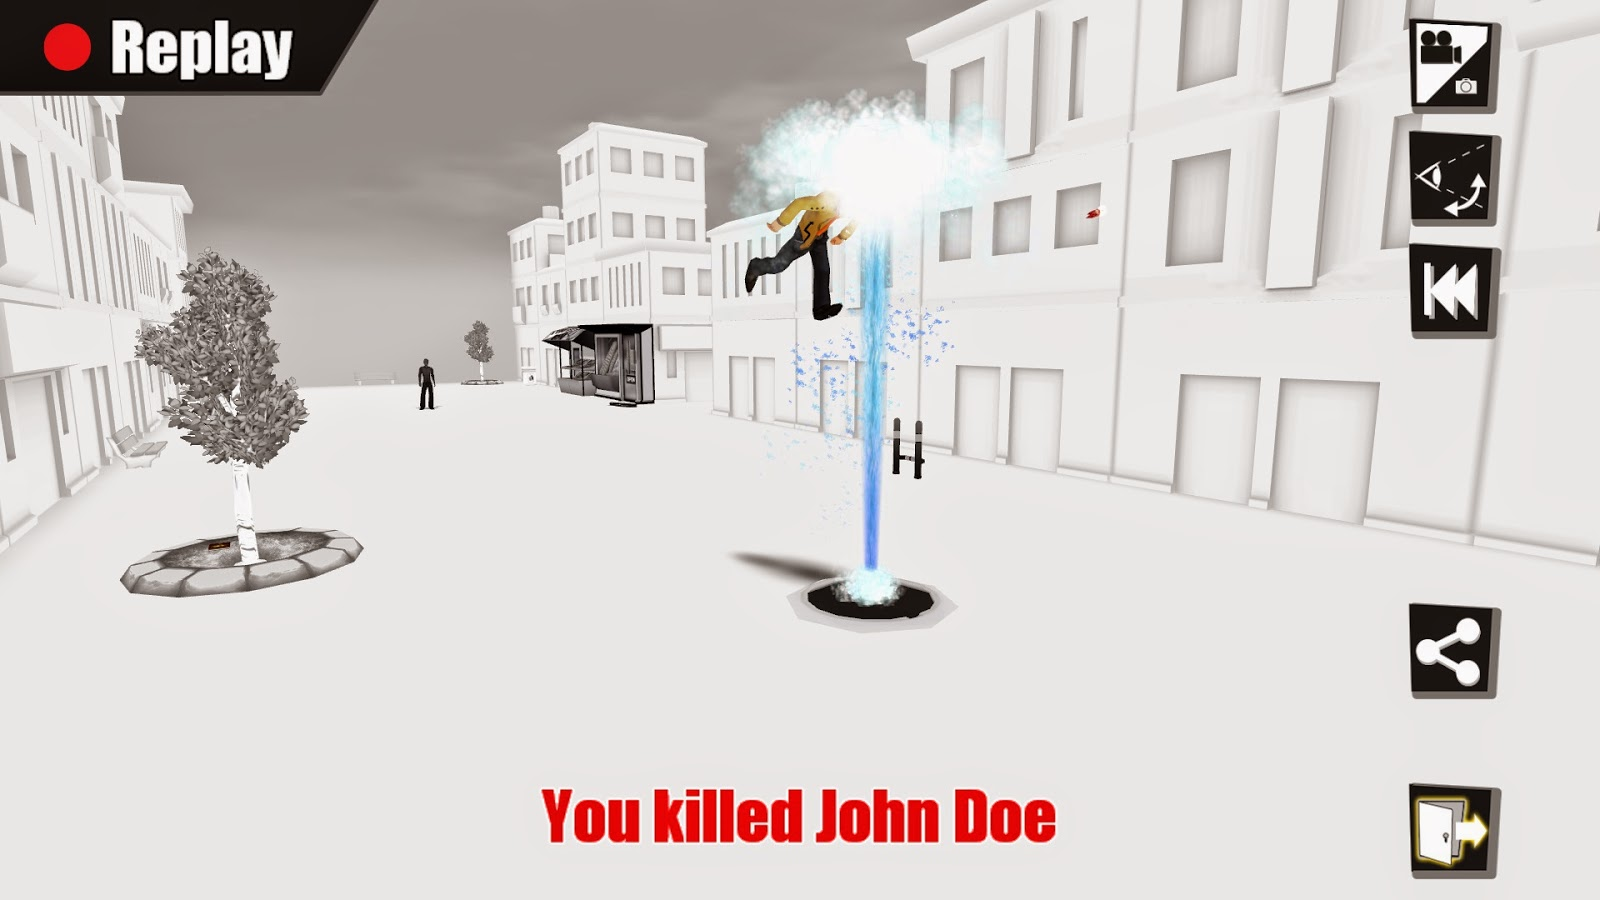 Kill the bad guy game kickstarter screenshot